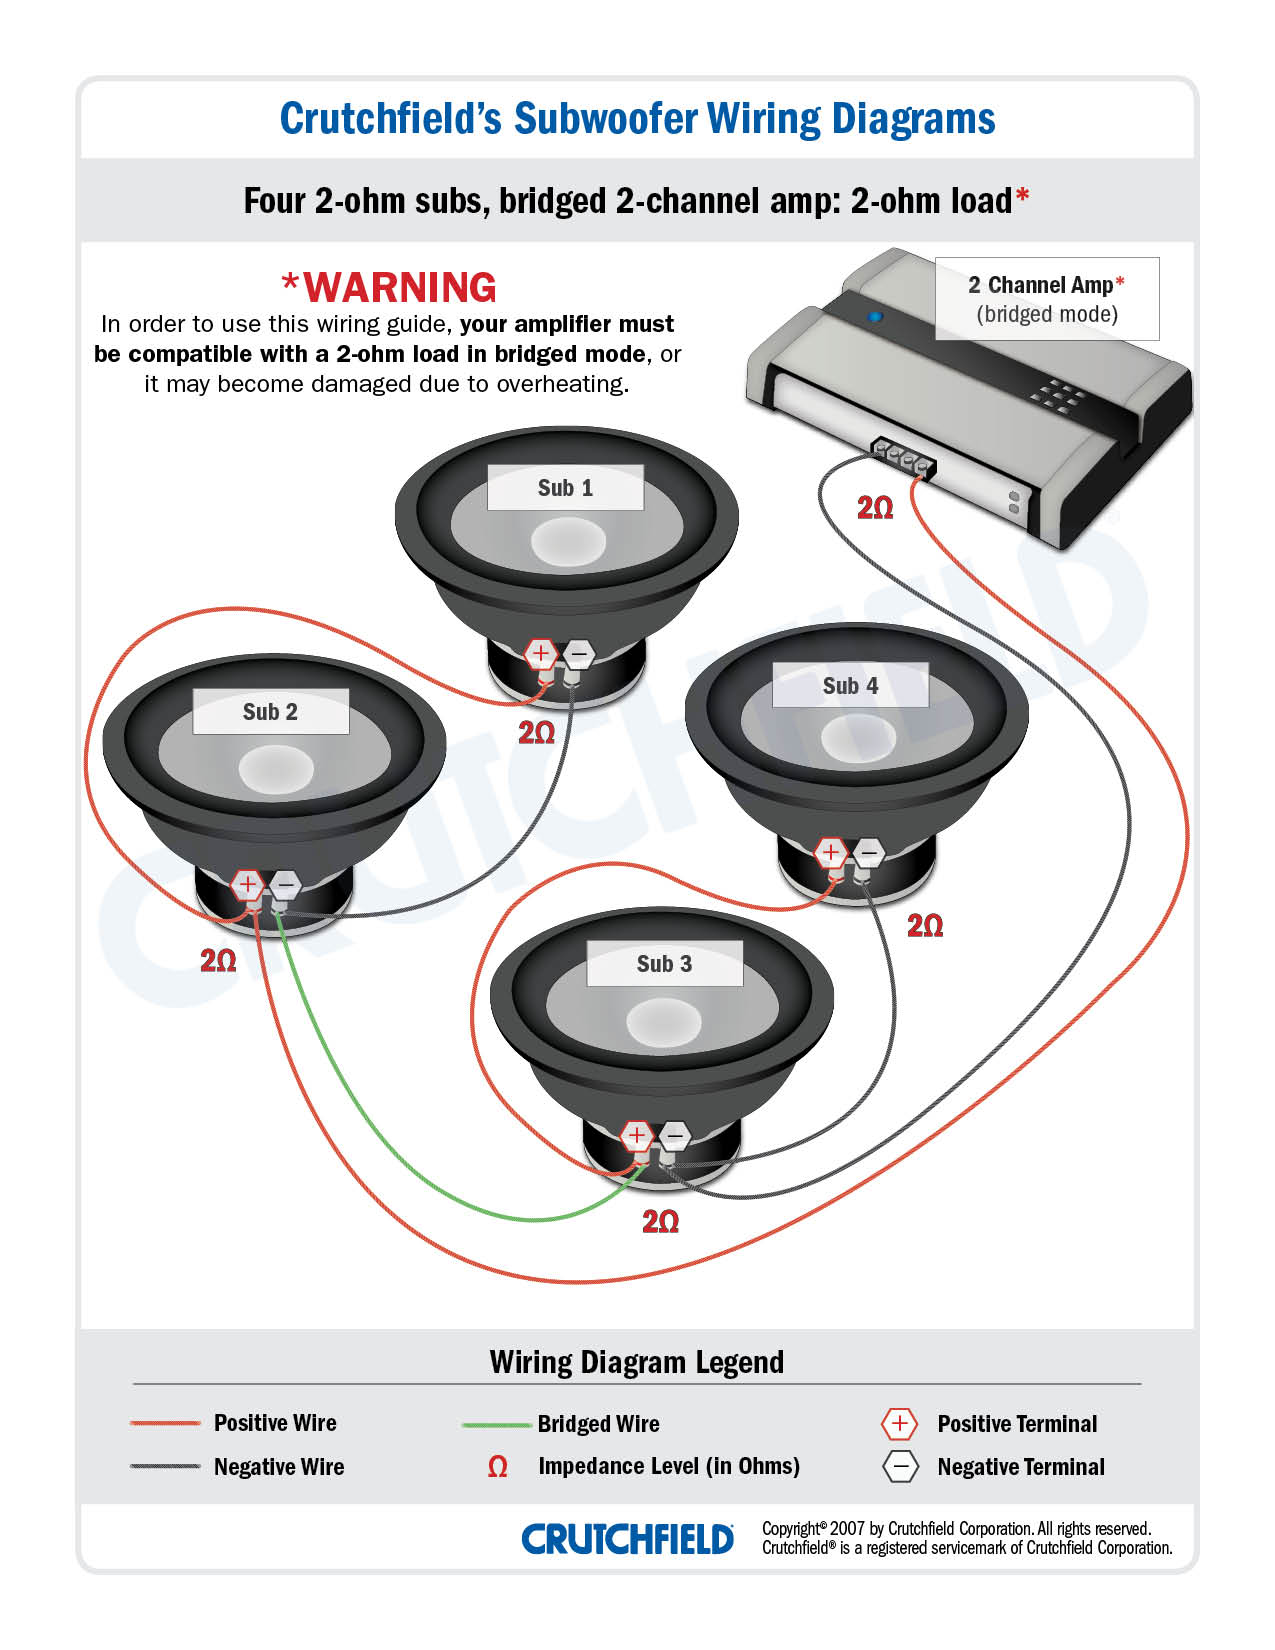 Subwoofer wiring diagrams how many subwoofers do you have swarovskicordoba Gallery